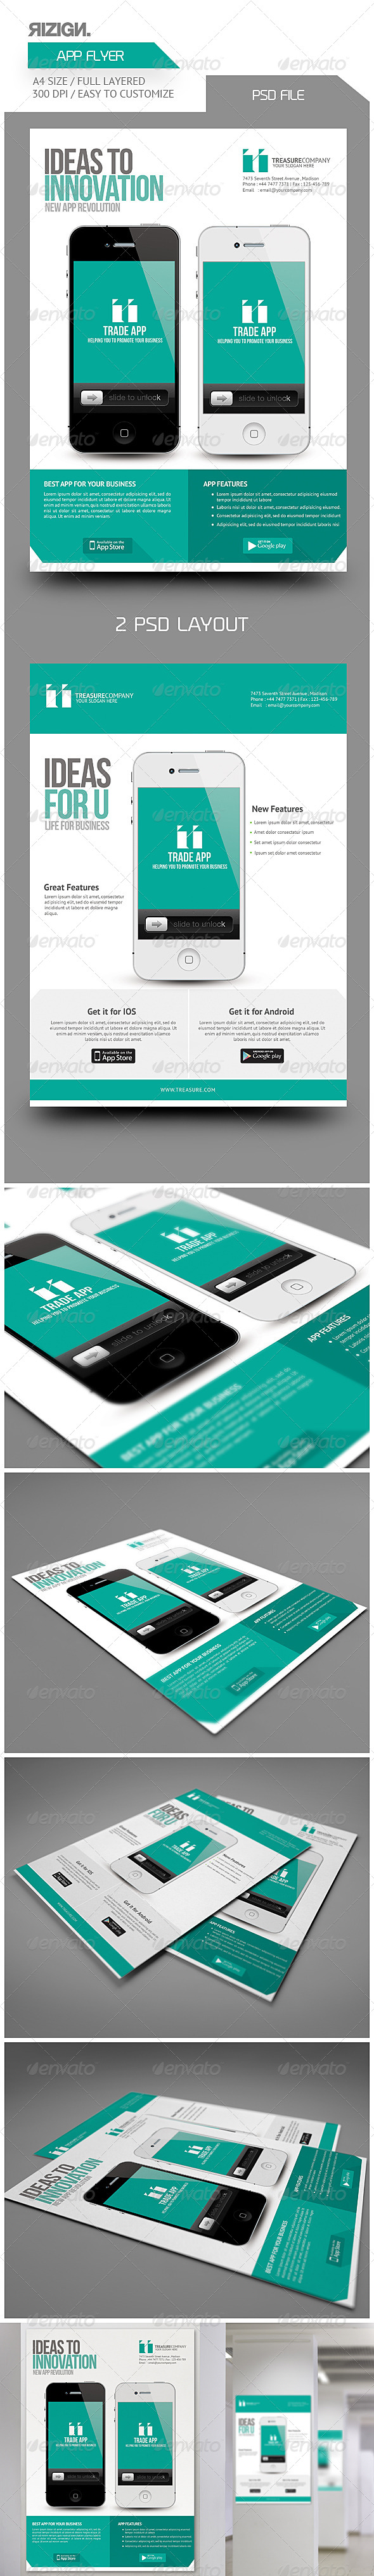 Mobile App Promotion Flyers - Corporate Flyers